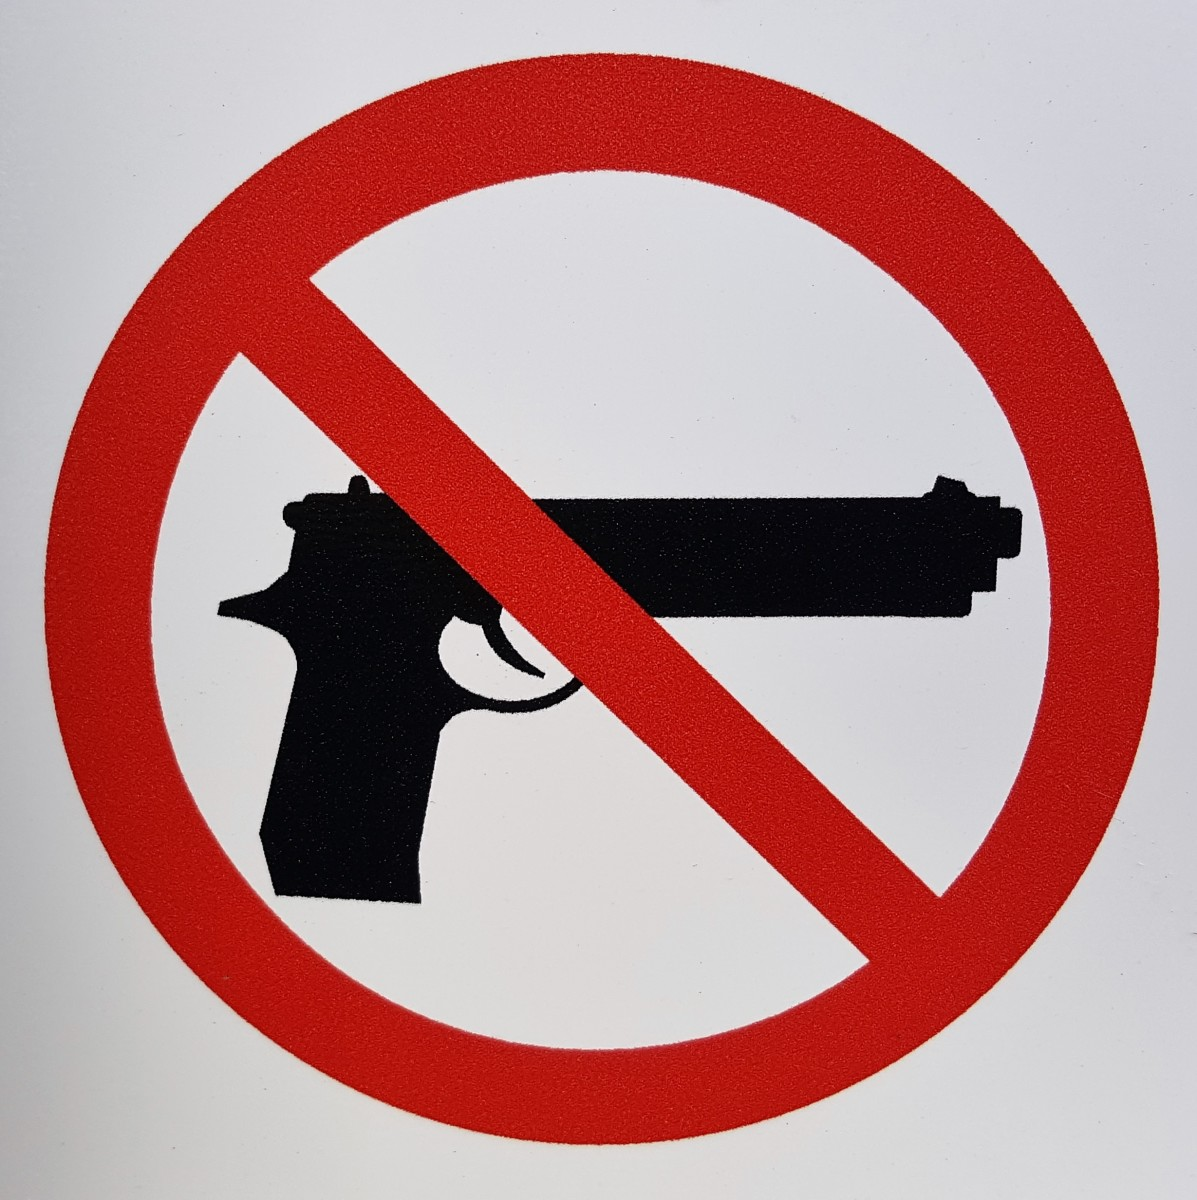 No guns allowed.